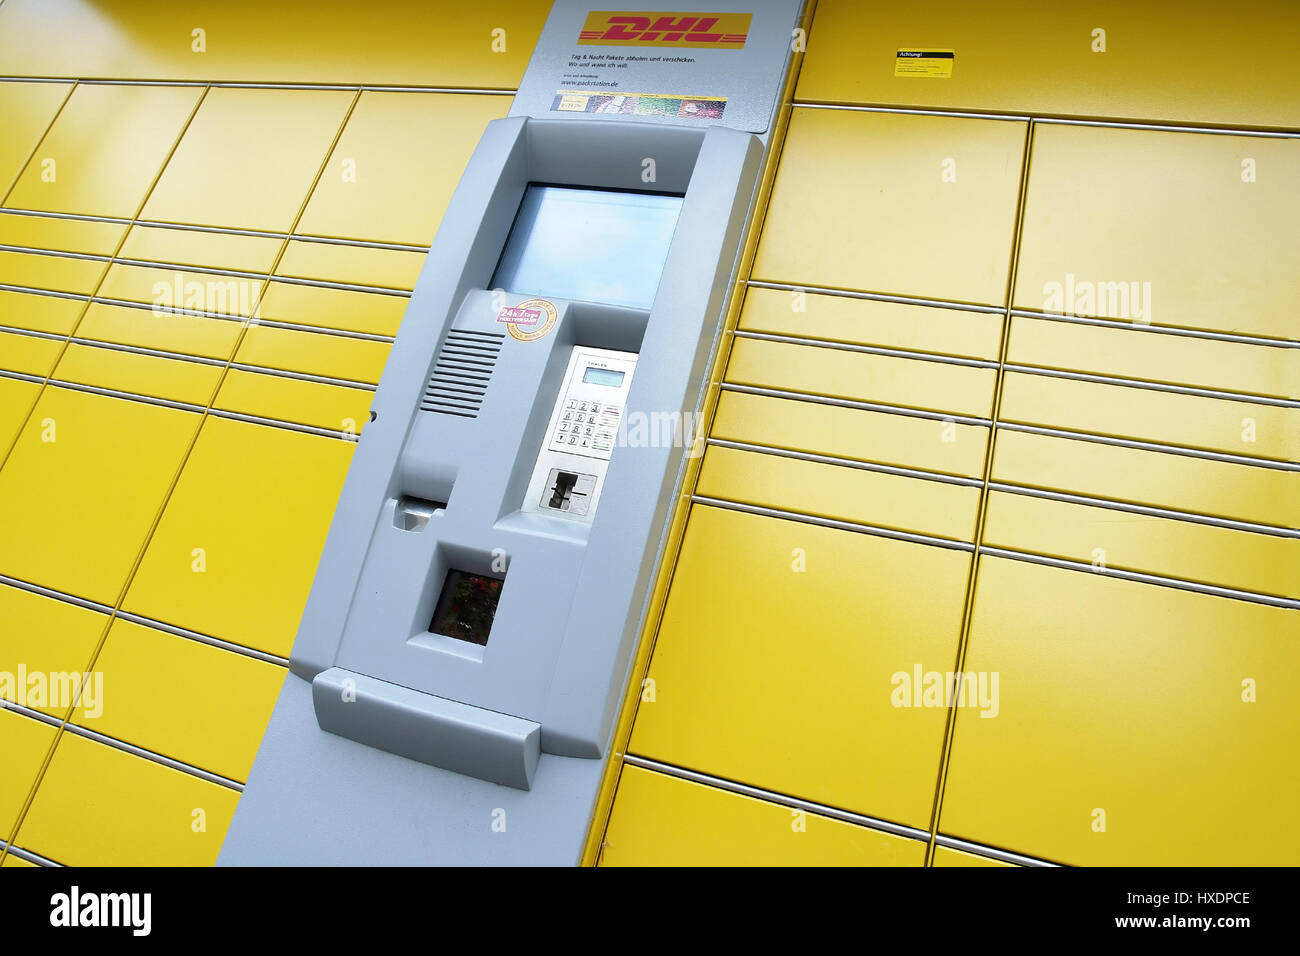 Package station of DHL, Paketstation von DHL Stock Photo